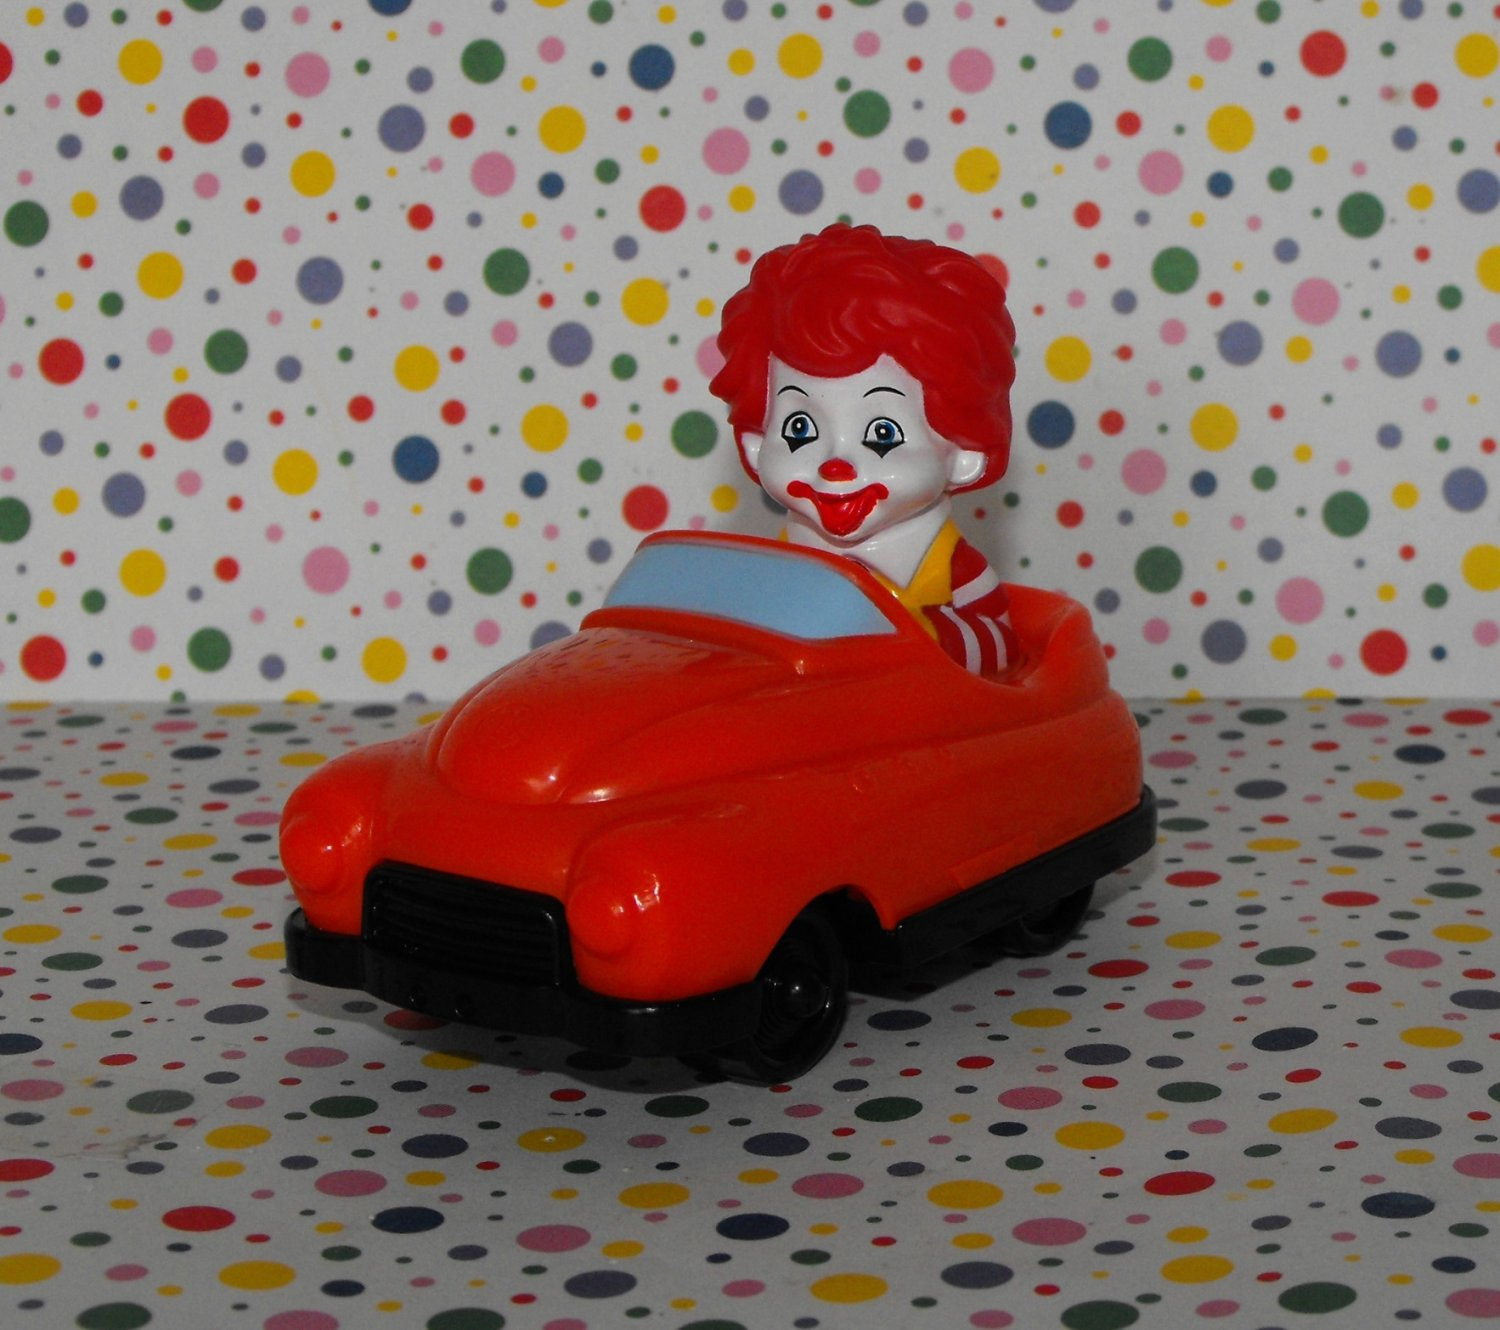 McDonald's Ronald McDonald Red Car Under 3 Happy Meal Toy